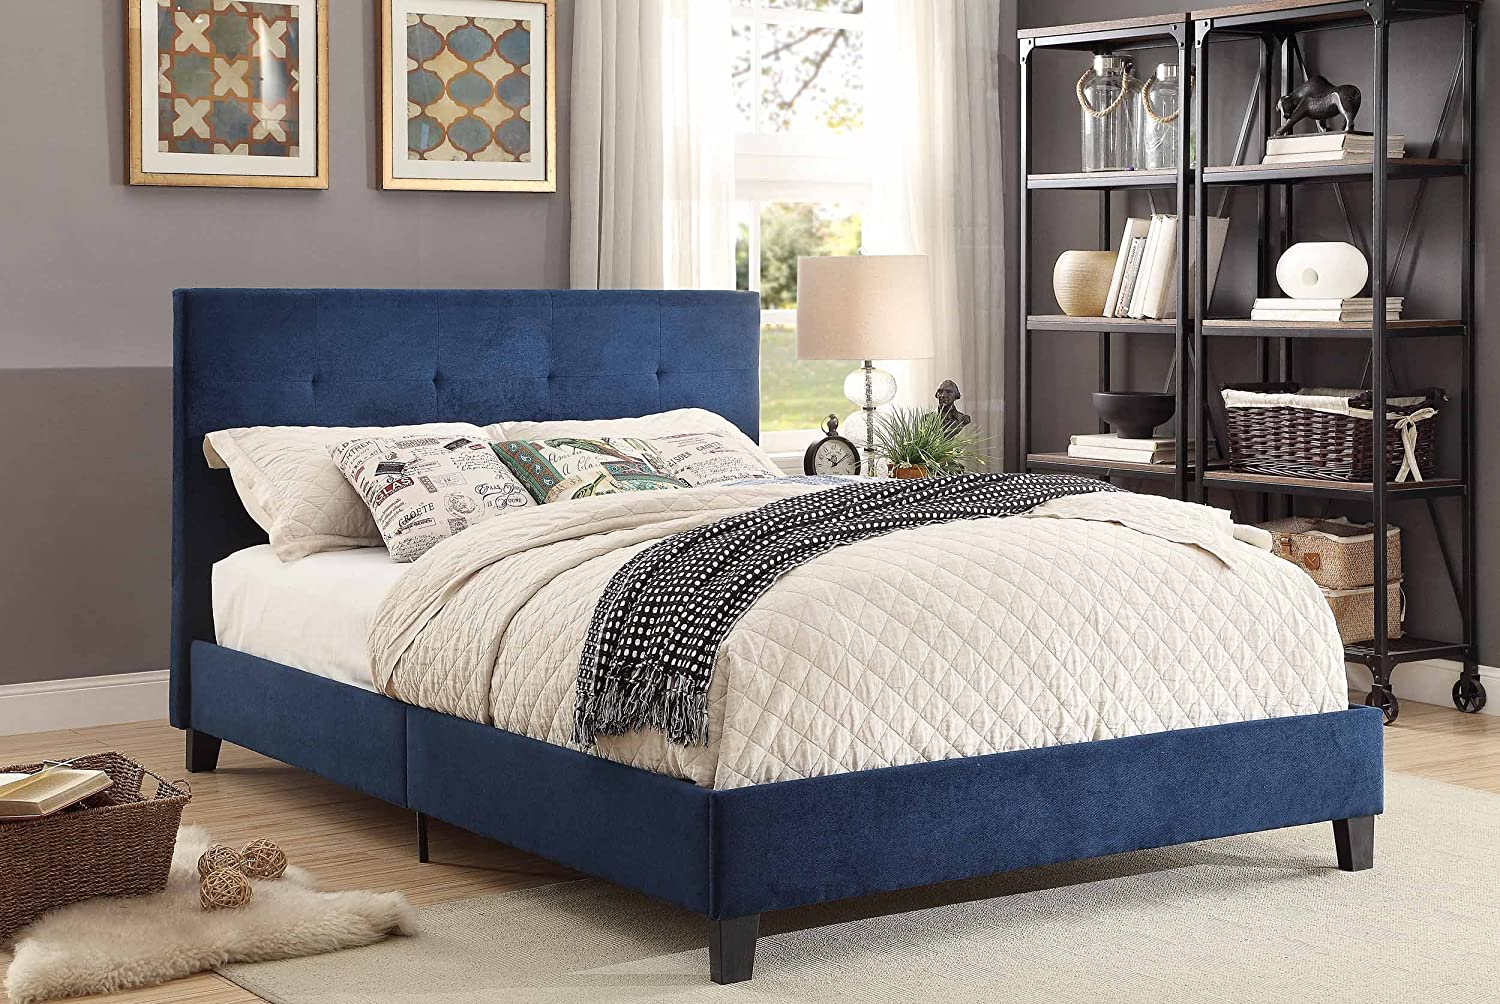 Amazon.com: Homelegance Upholstered Queen Platform Bed Frame w ...